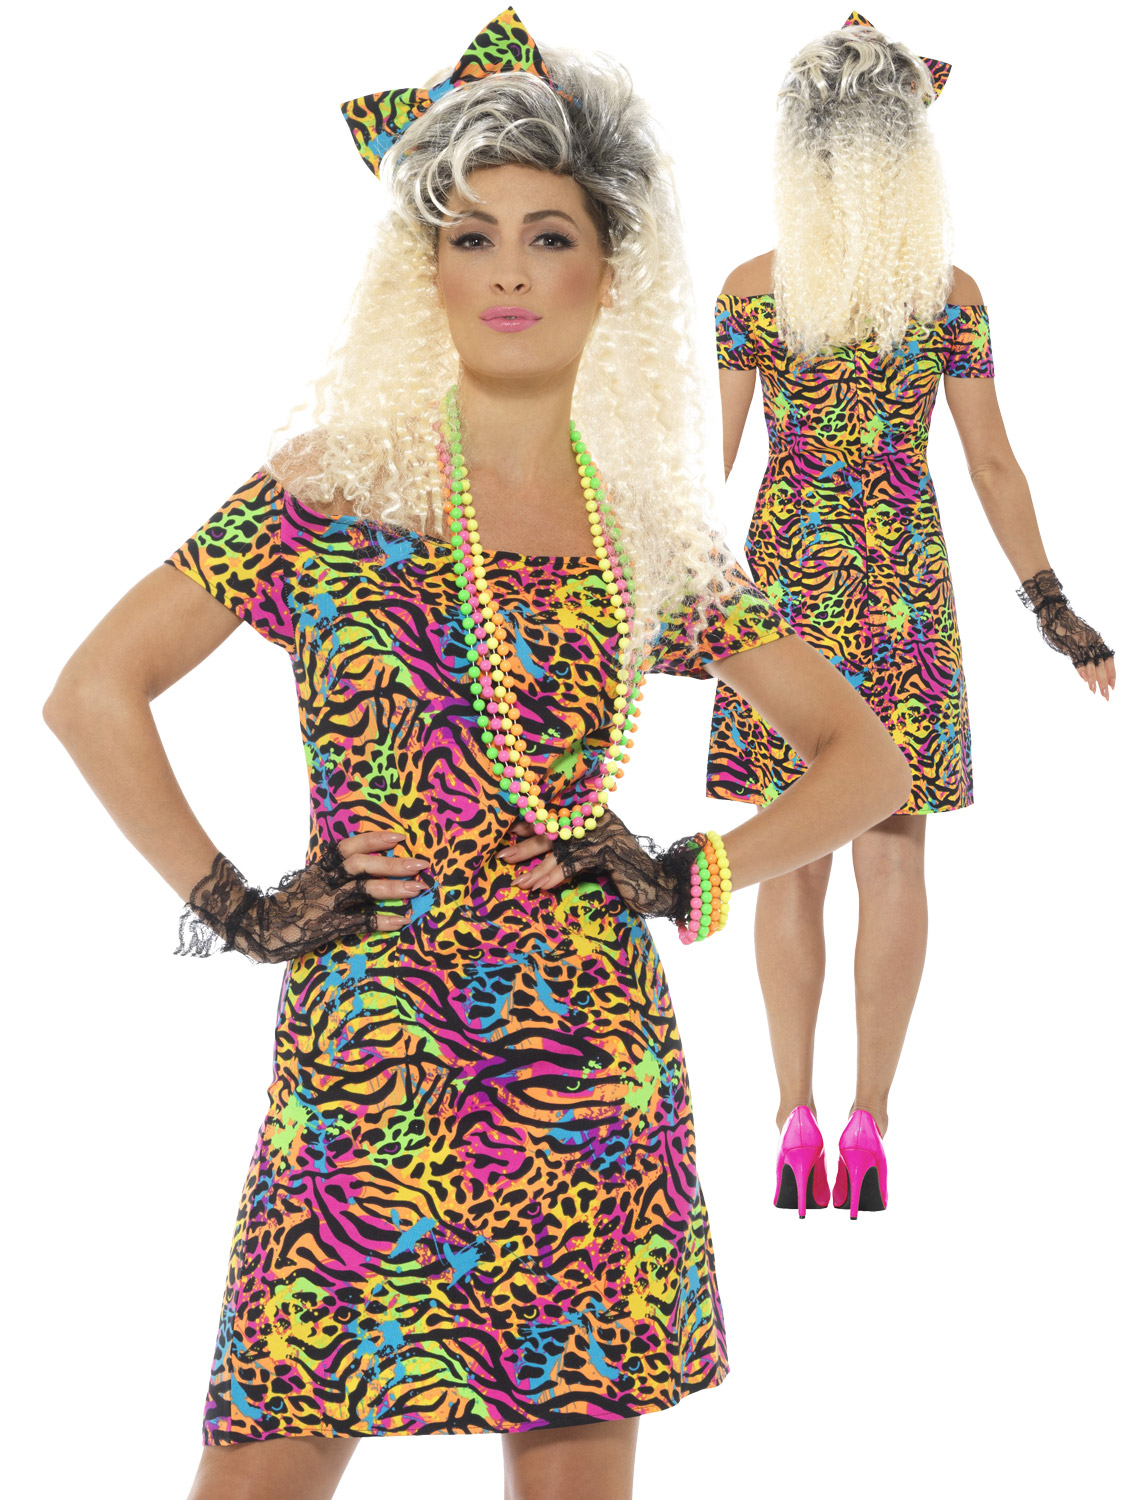 This 80s Inspired Fancy Dress Costume Is Ideal For Any Retro Themed Event